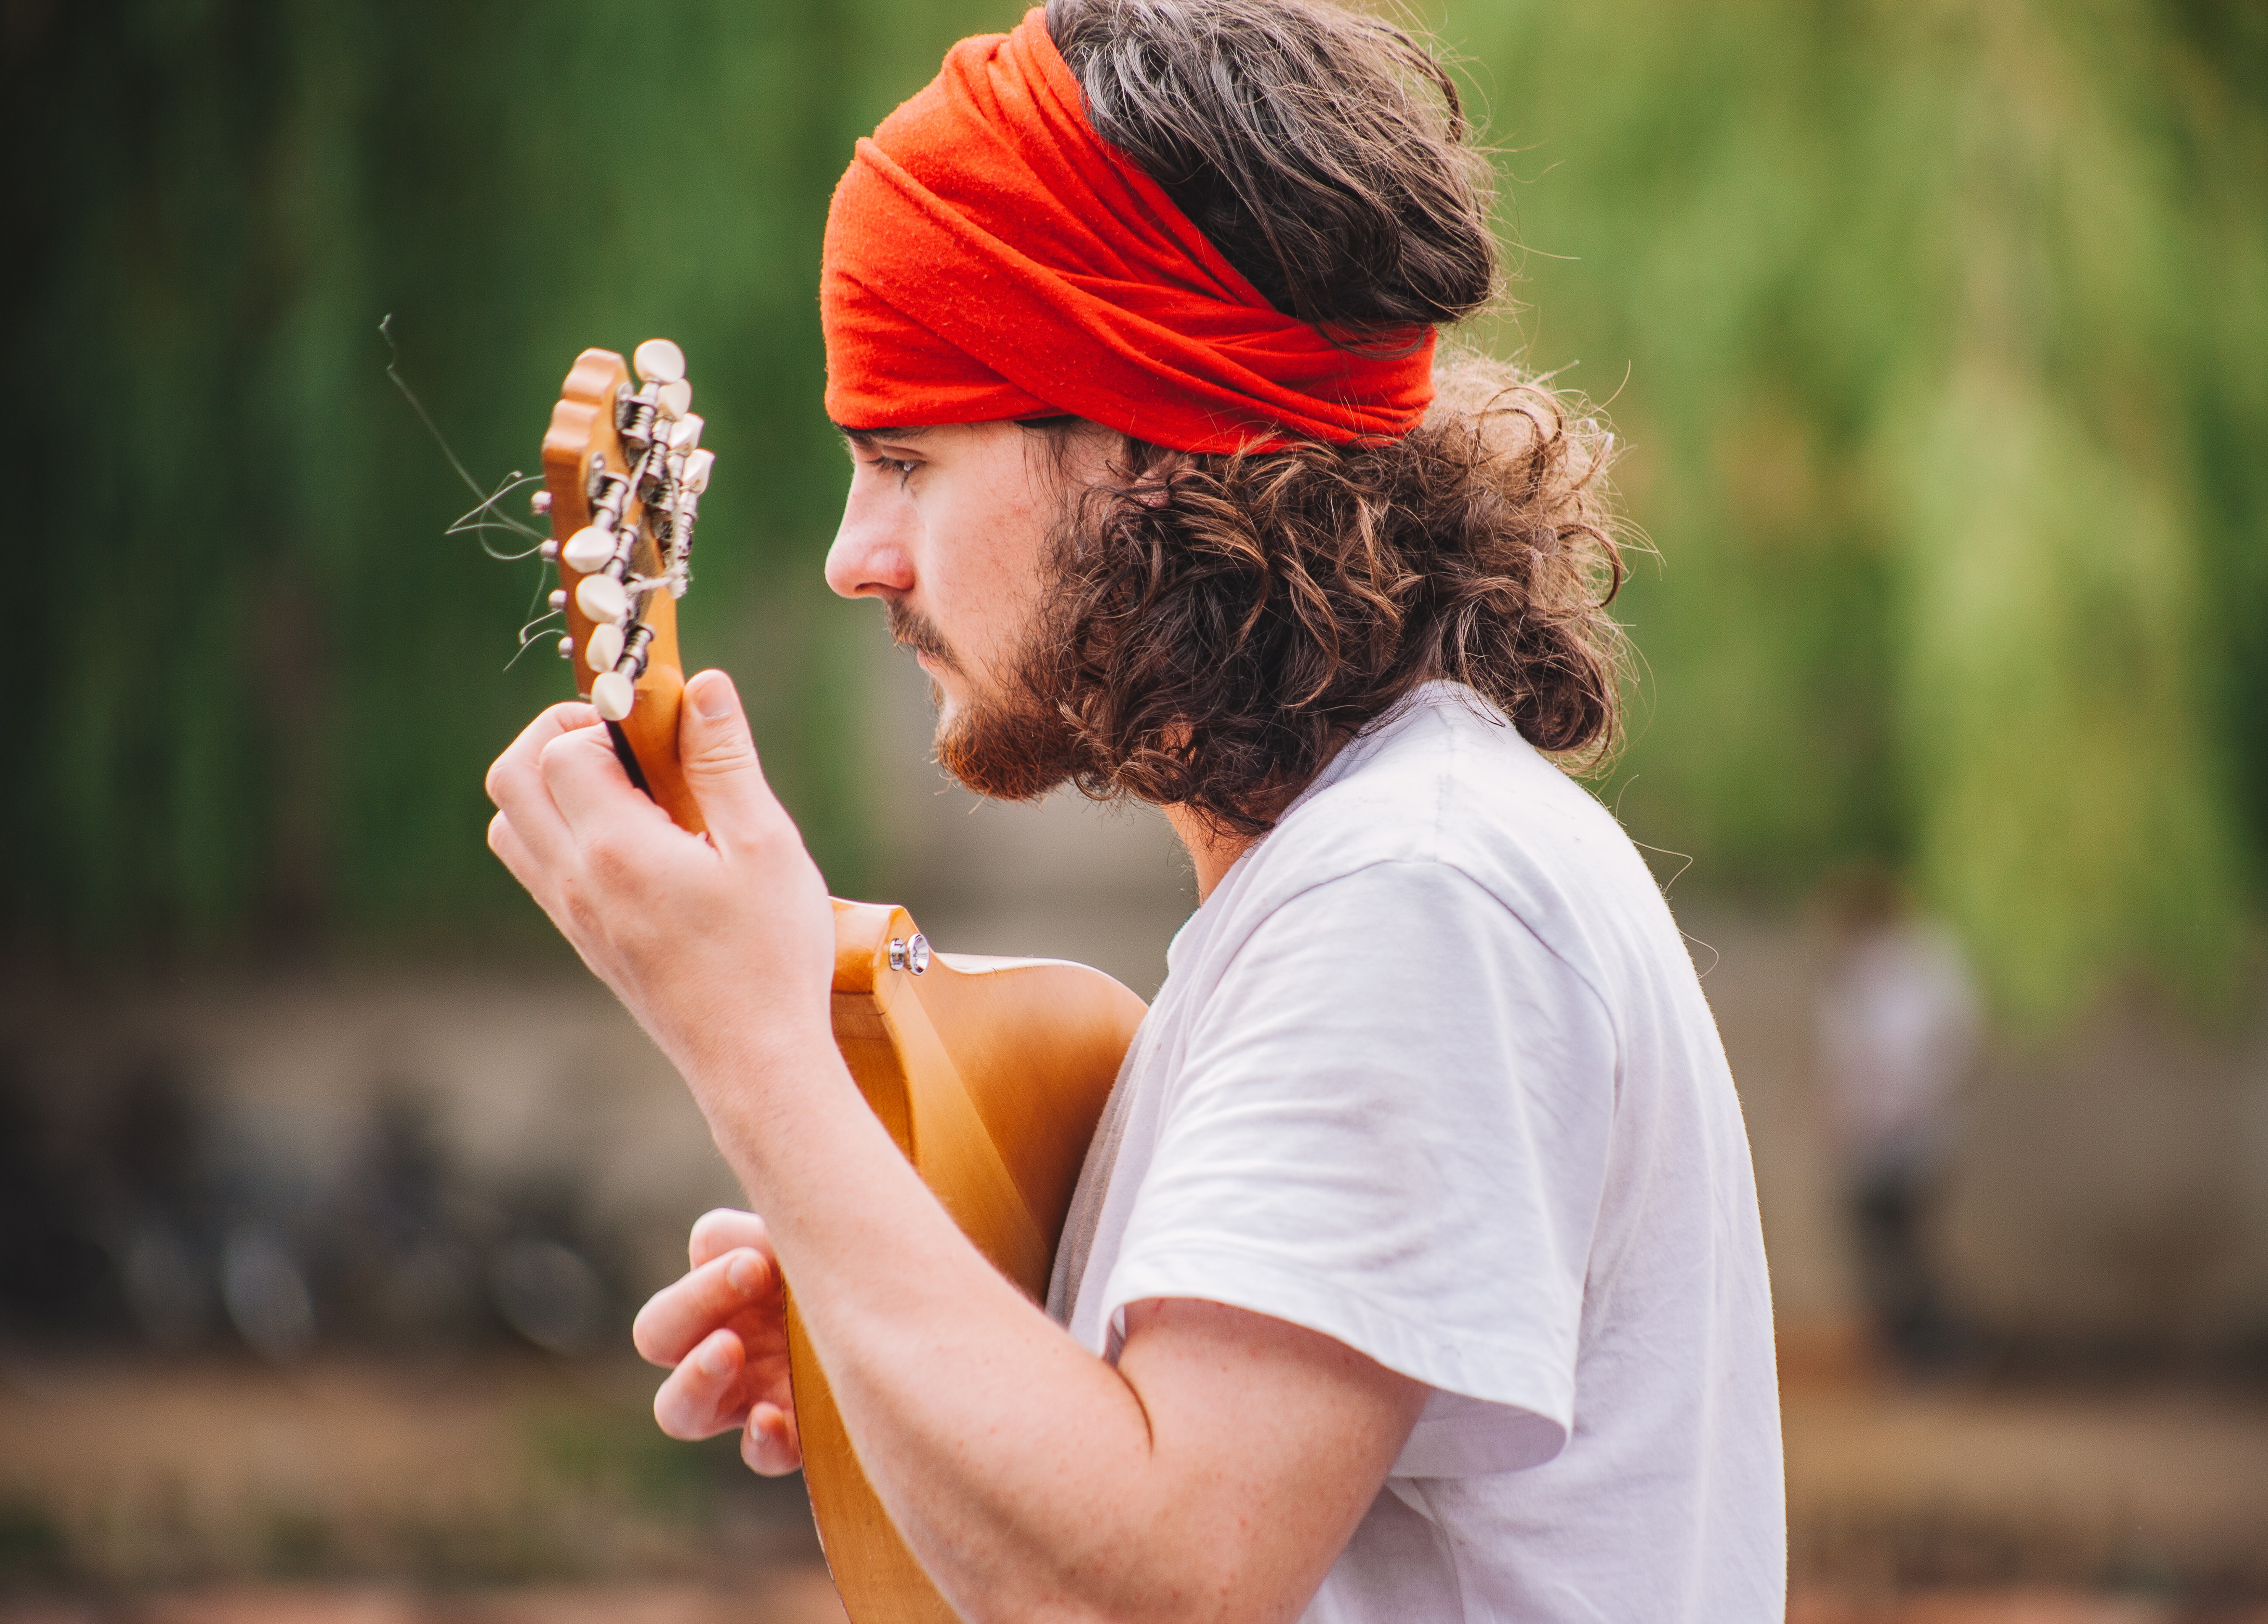 shallow focus photography of man playing guitar outdoors